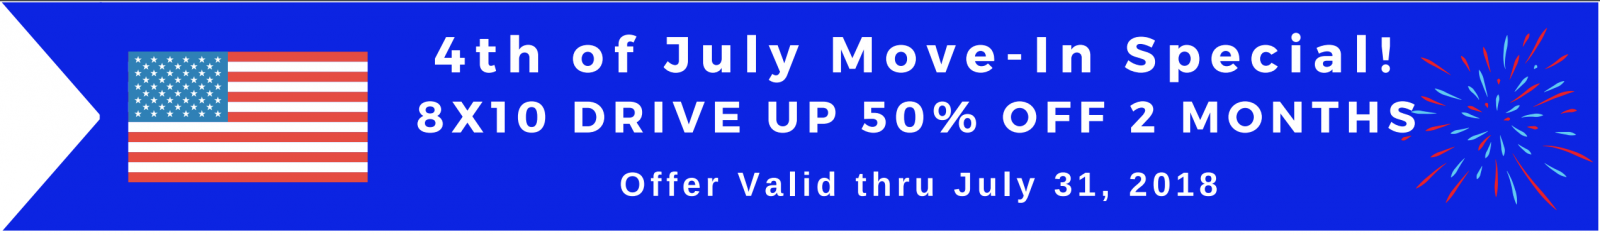 50% off for 2 months on 8x10